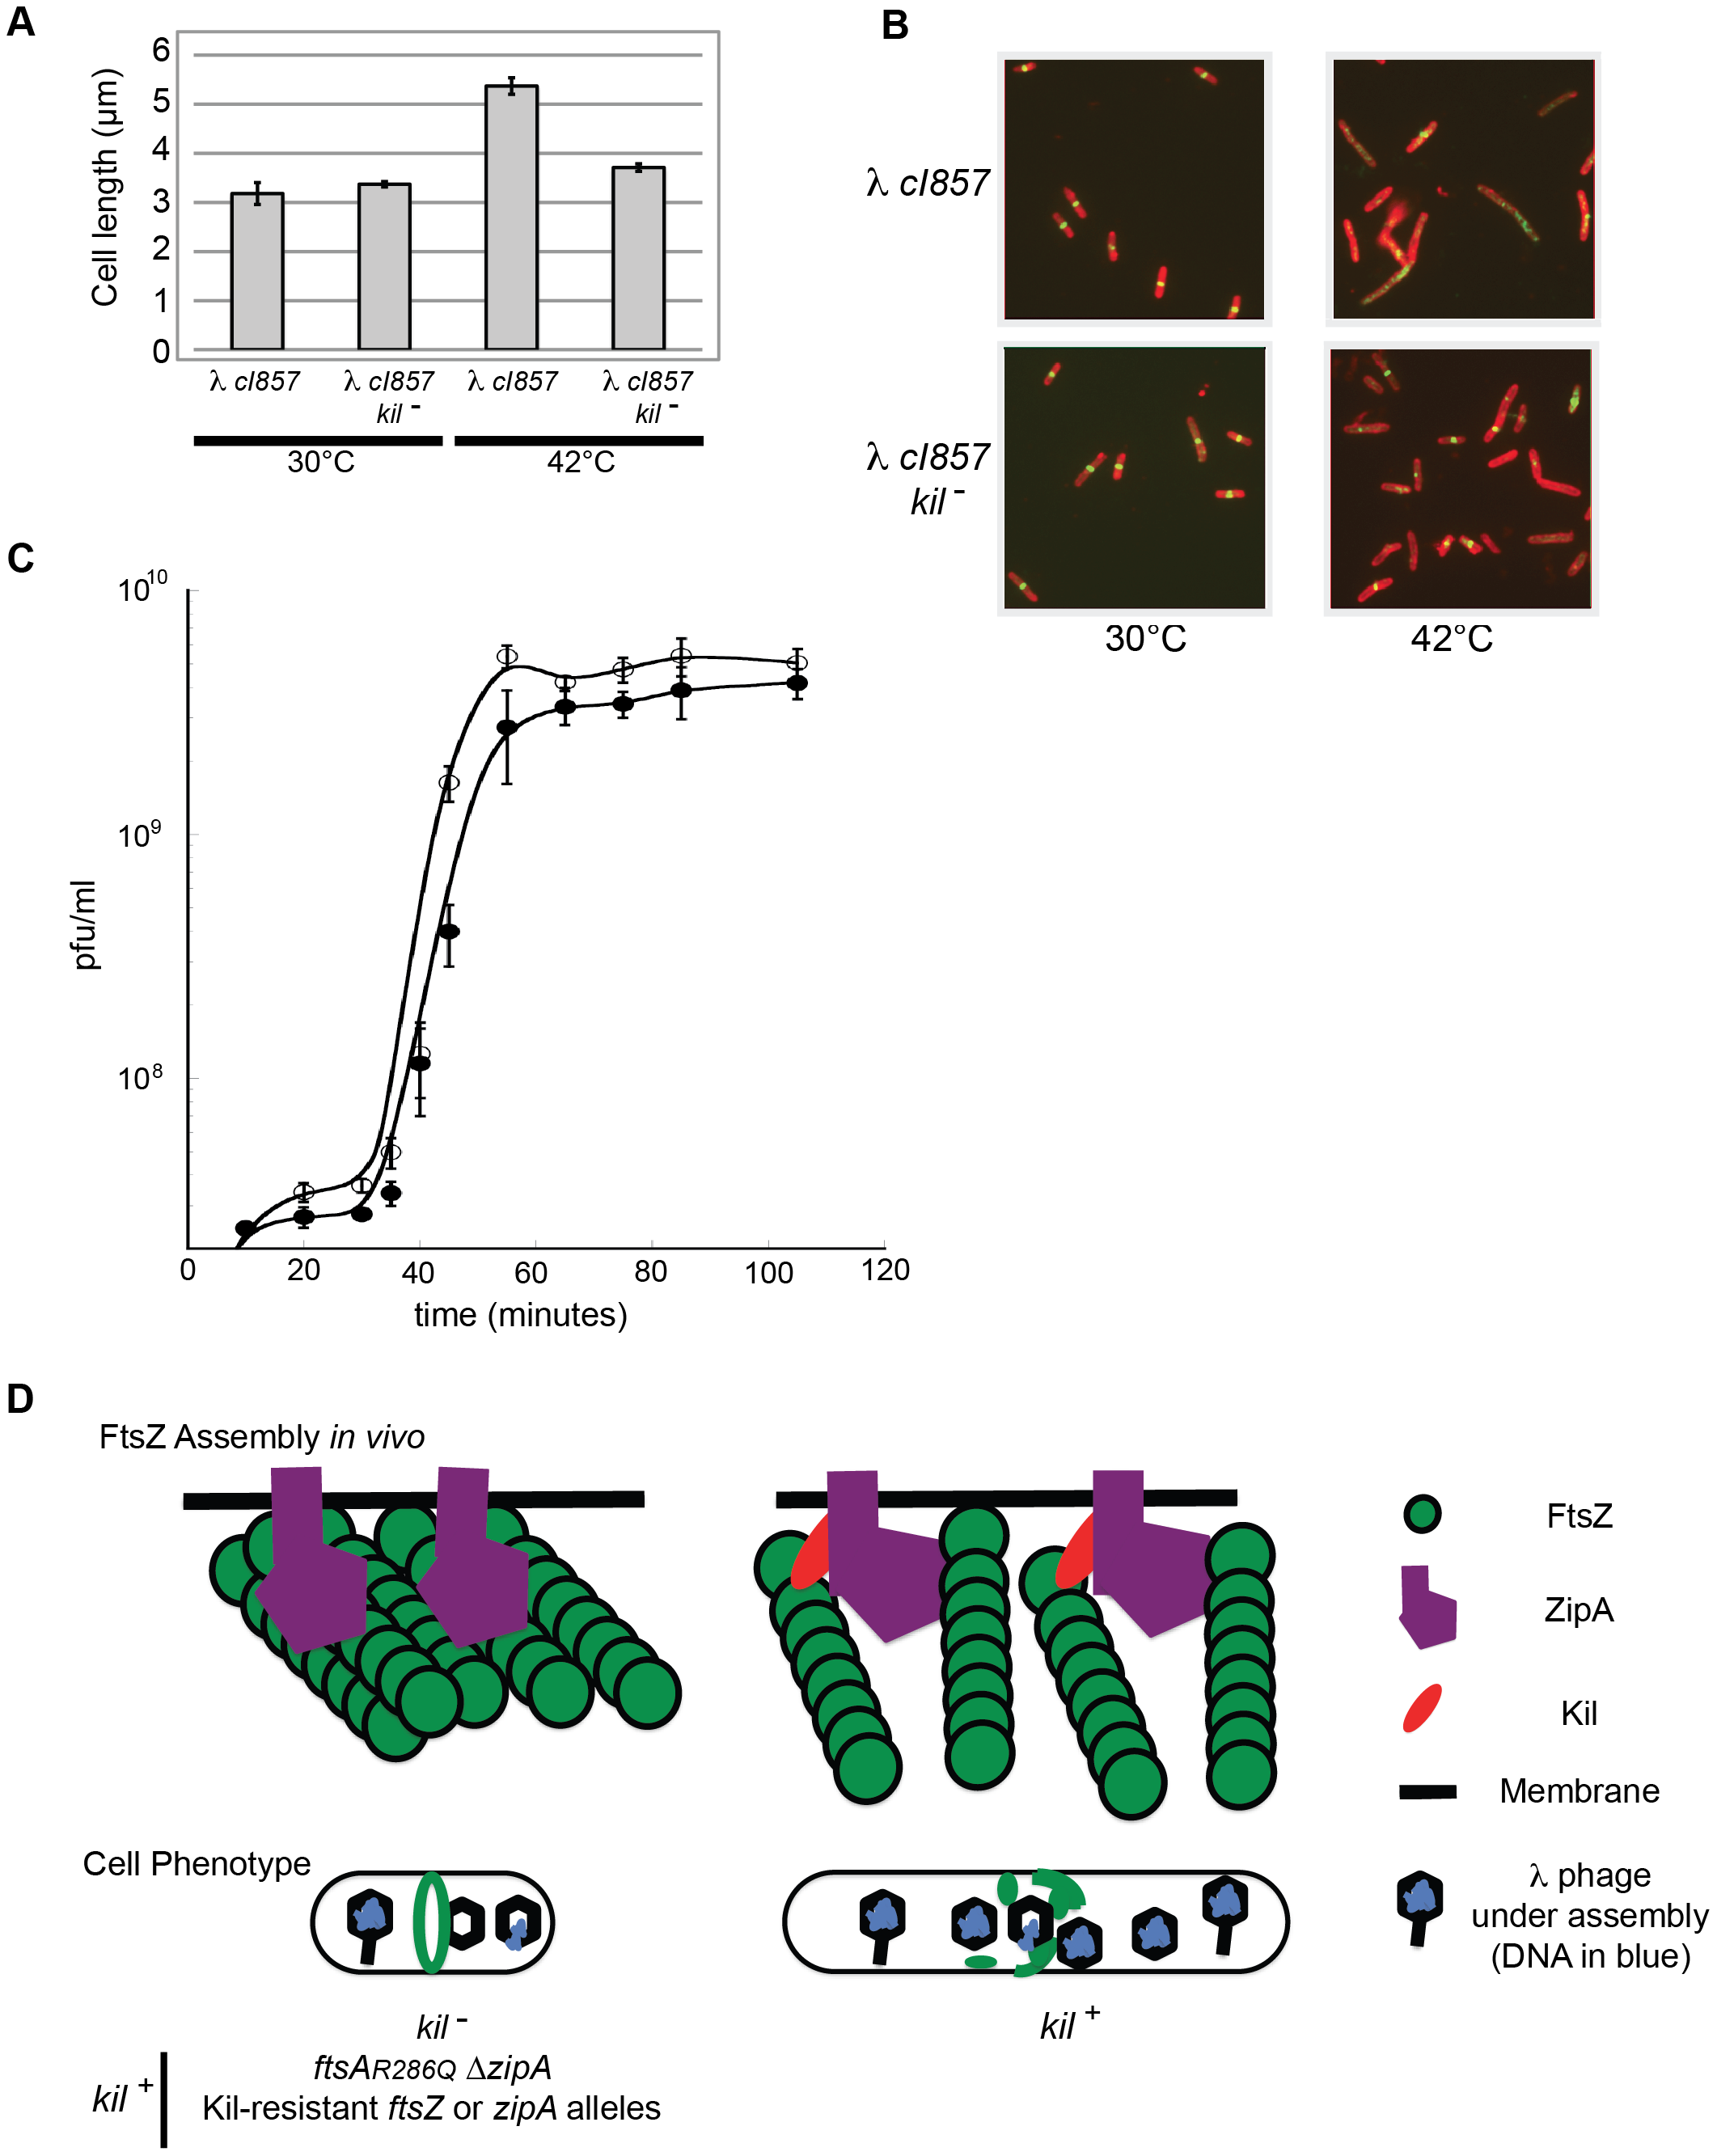 λ lysogen induction inhibits host cell division in a <i>kil</i>-dependent manner.